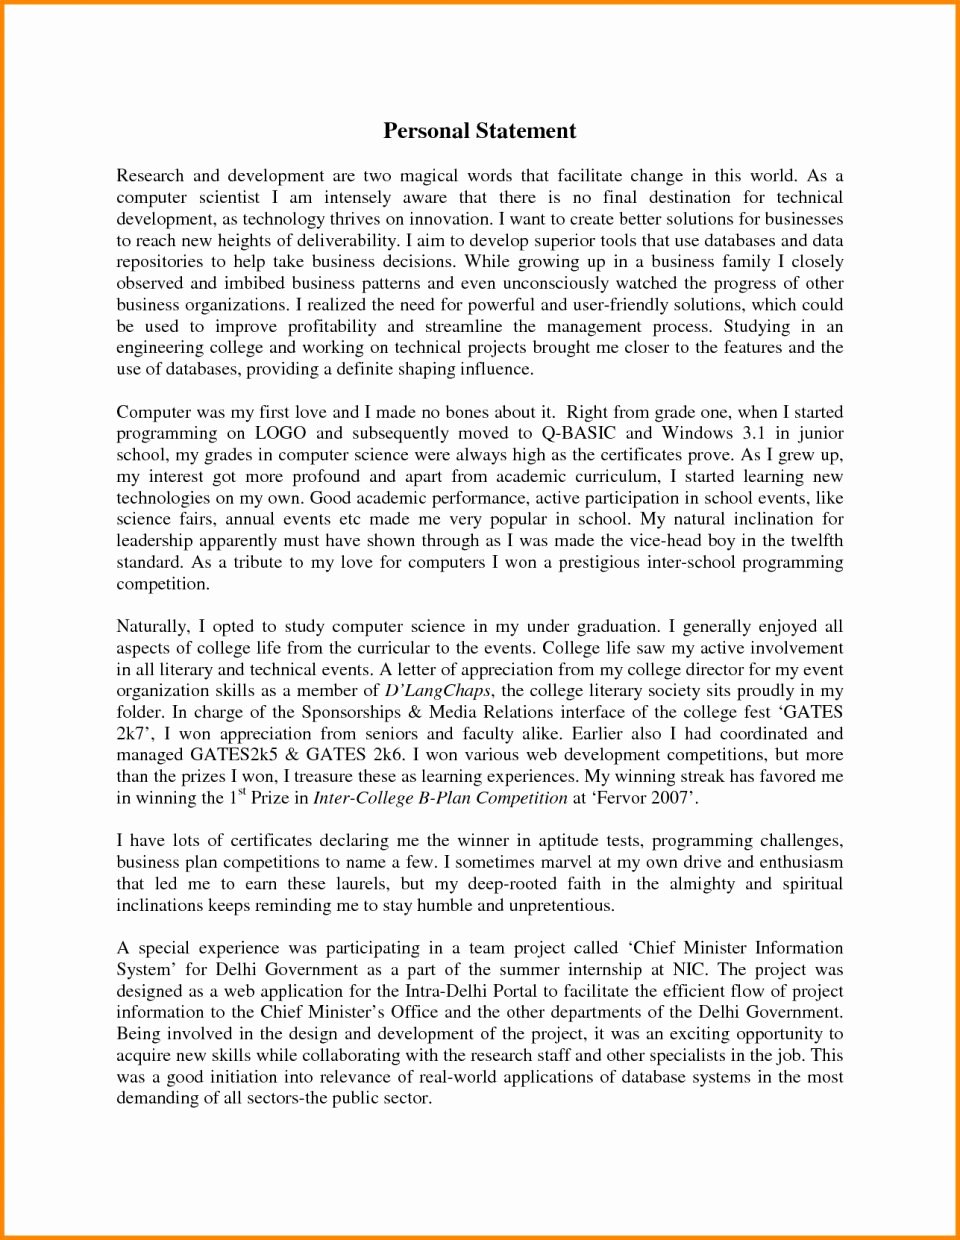 Personal Statement Of Faith Template Unique Personal Statement Faith Examples Presbyterian for Job